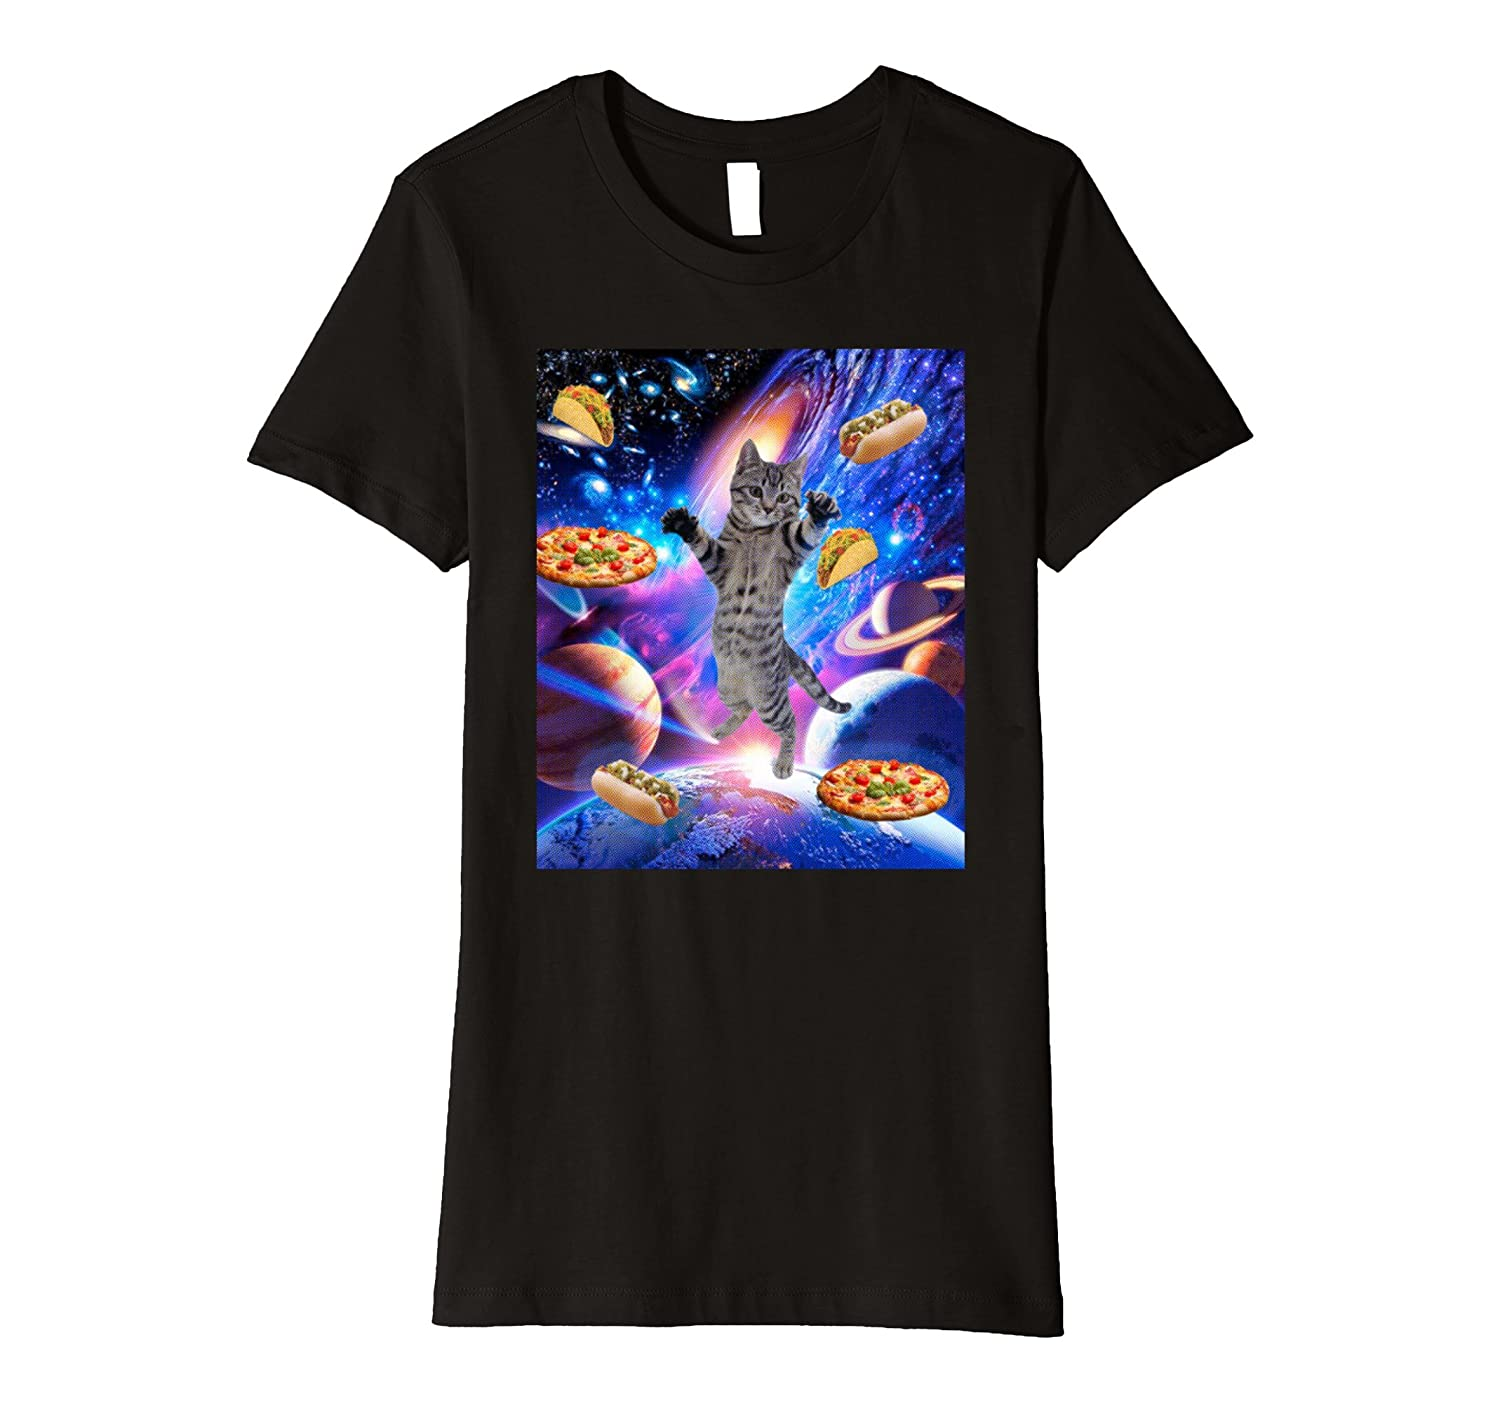 Hungry Space Cat – Trippy Shirt design with vivid colors